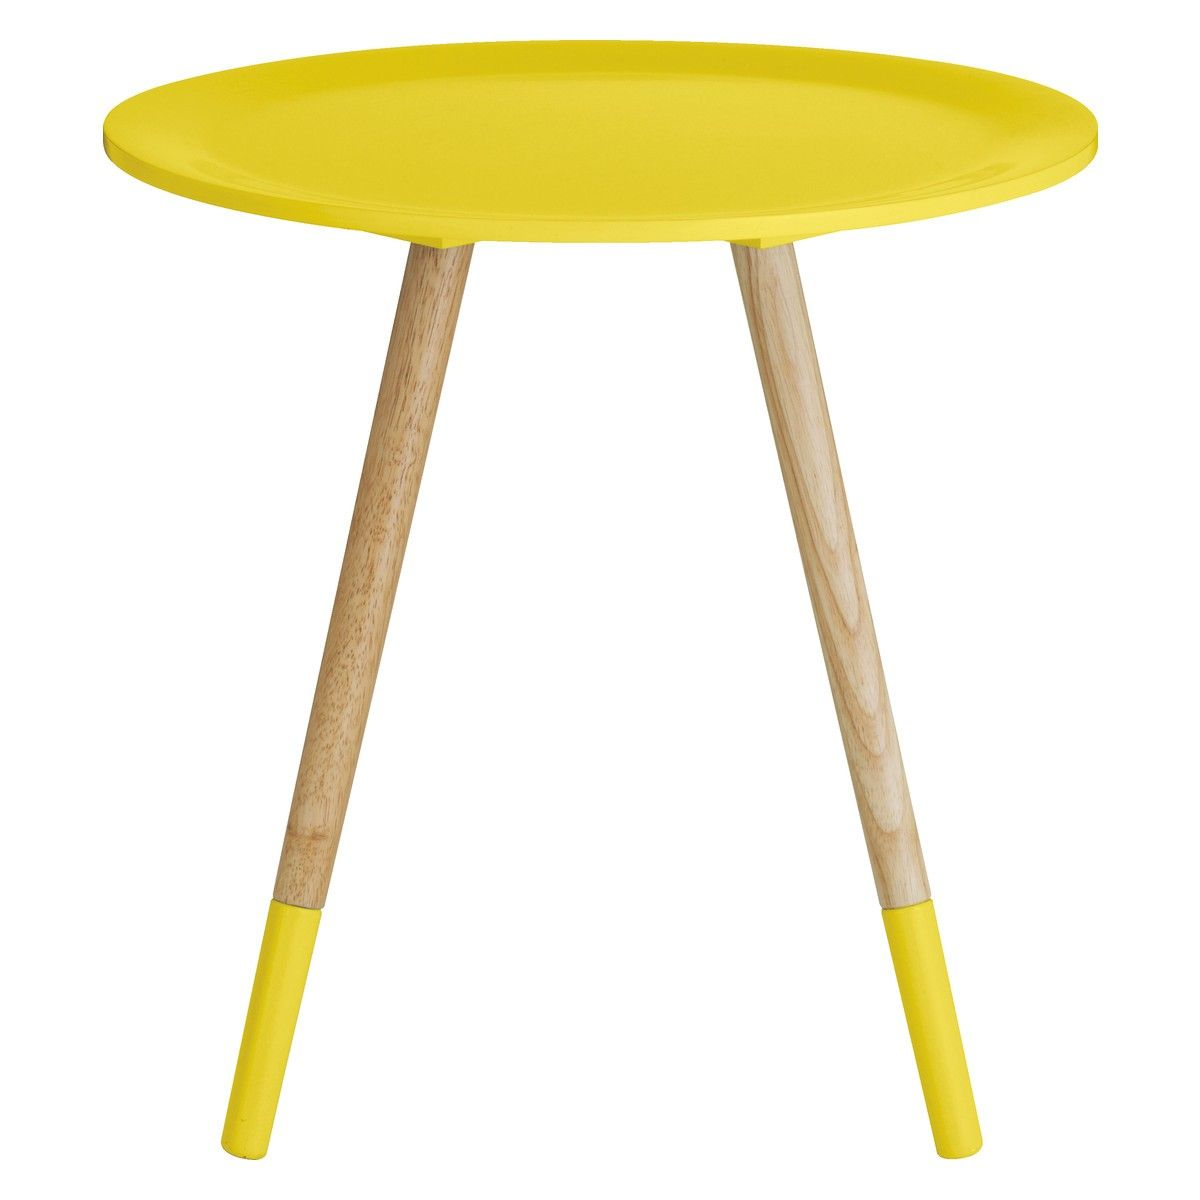 The homes edit: 10 best side tables